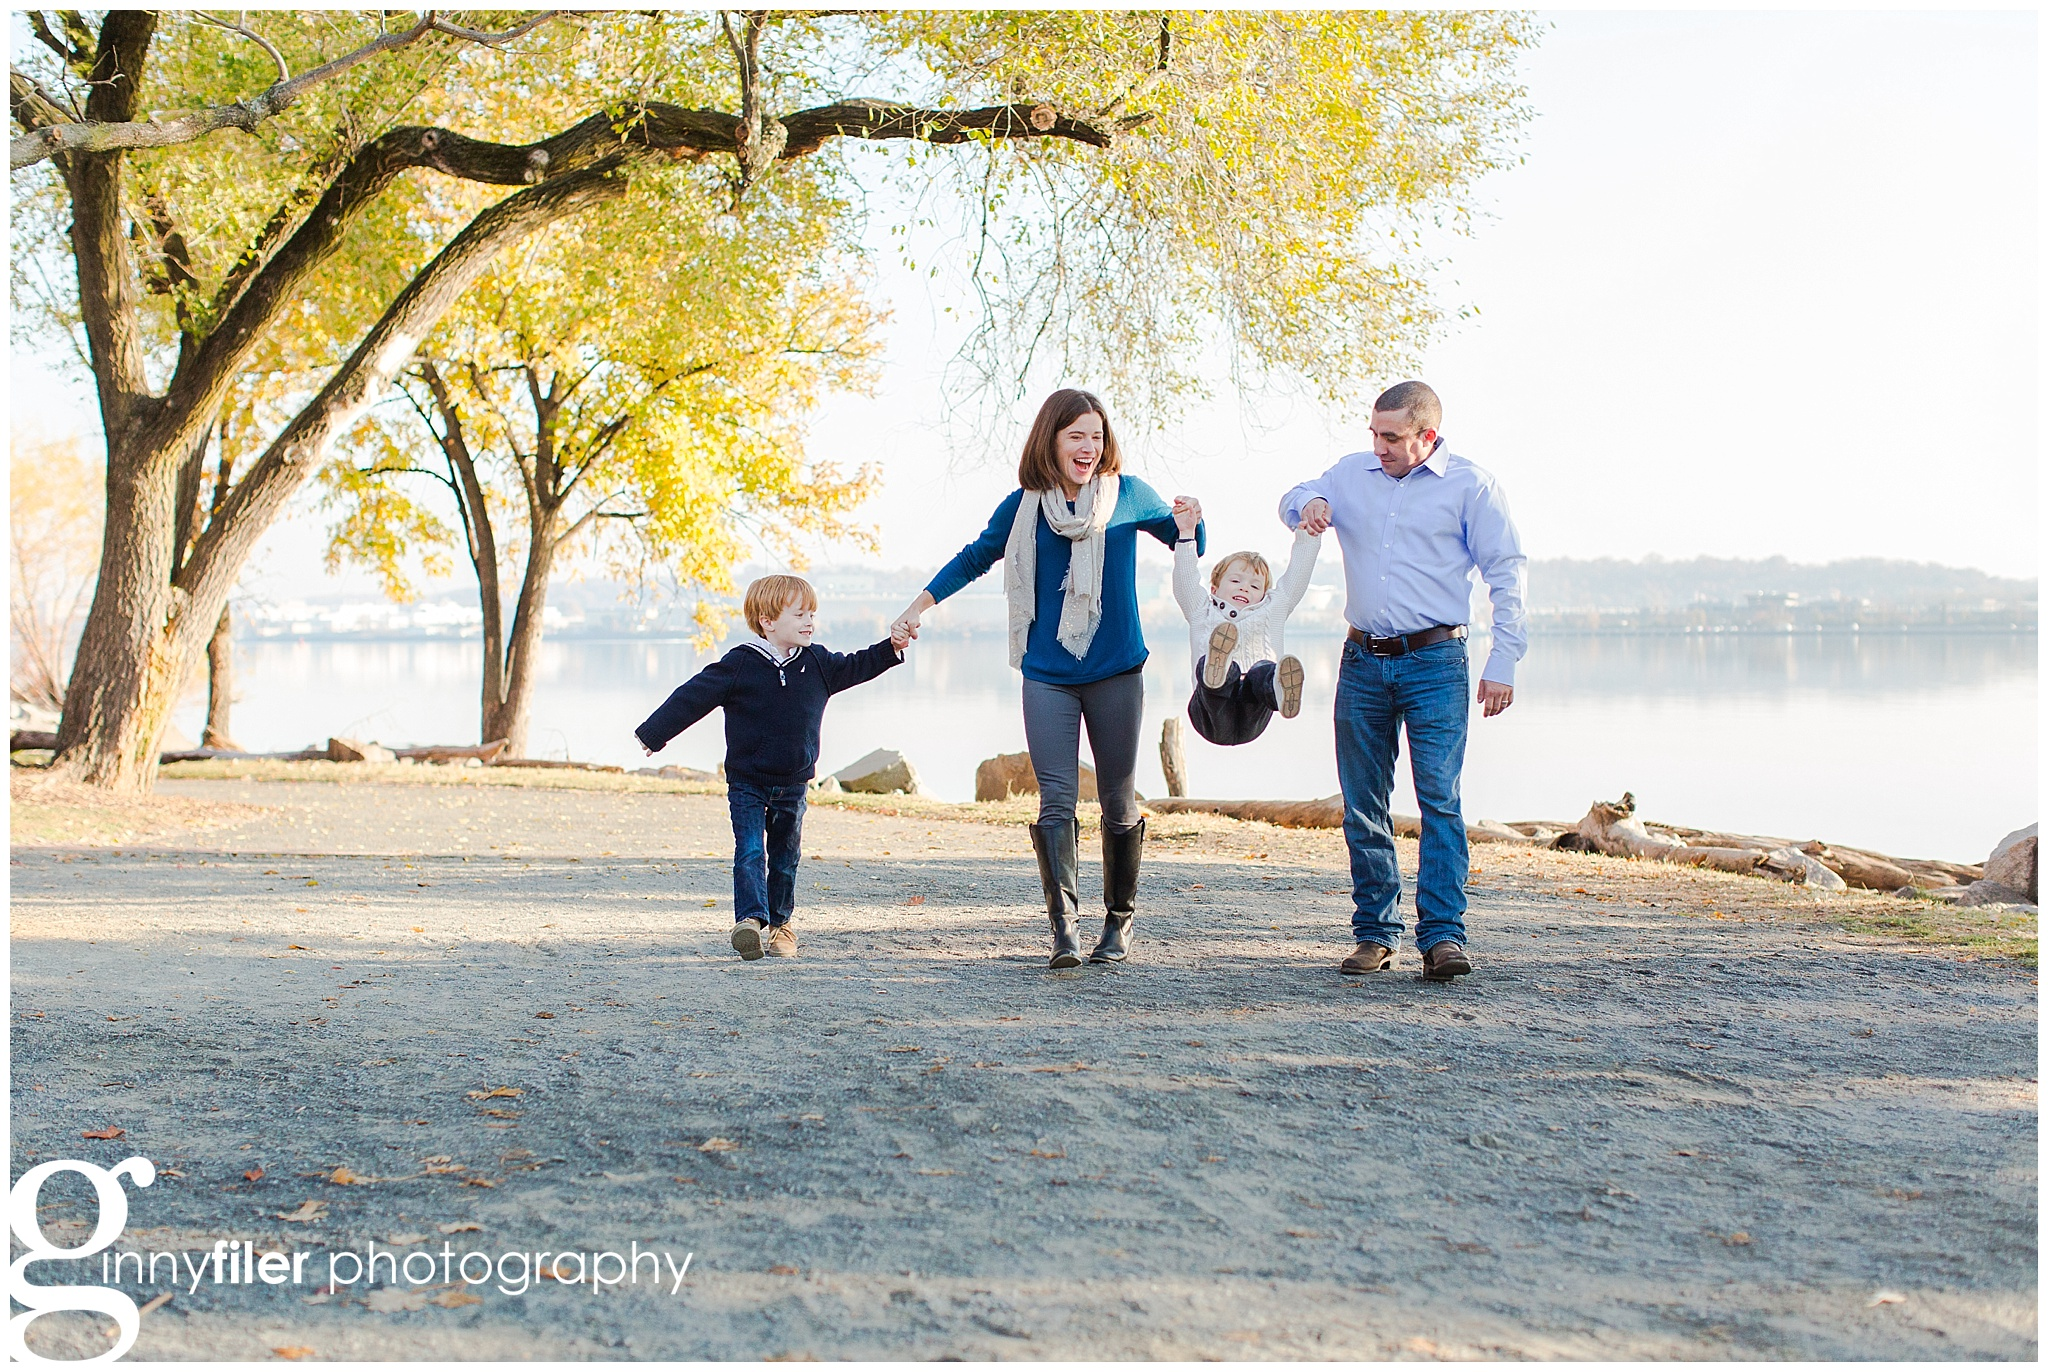 family_photography_riedy_0026.jpg